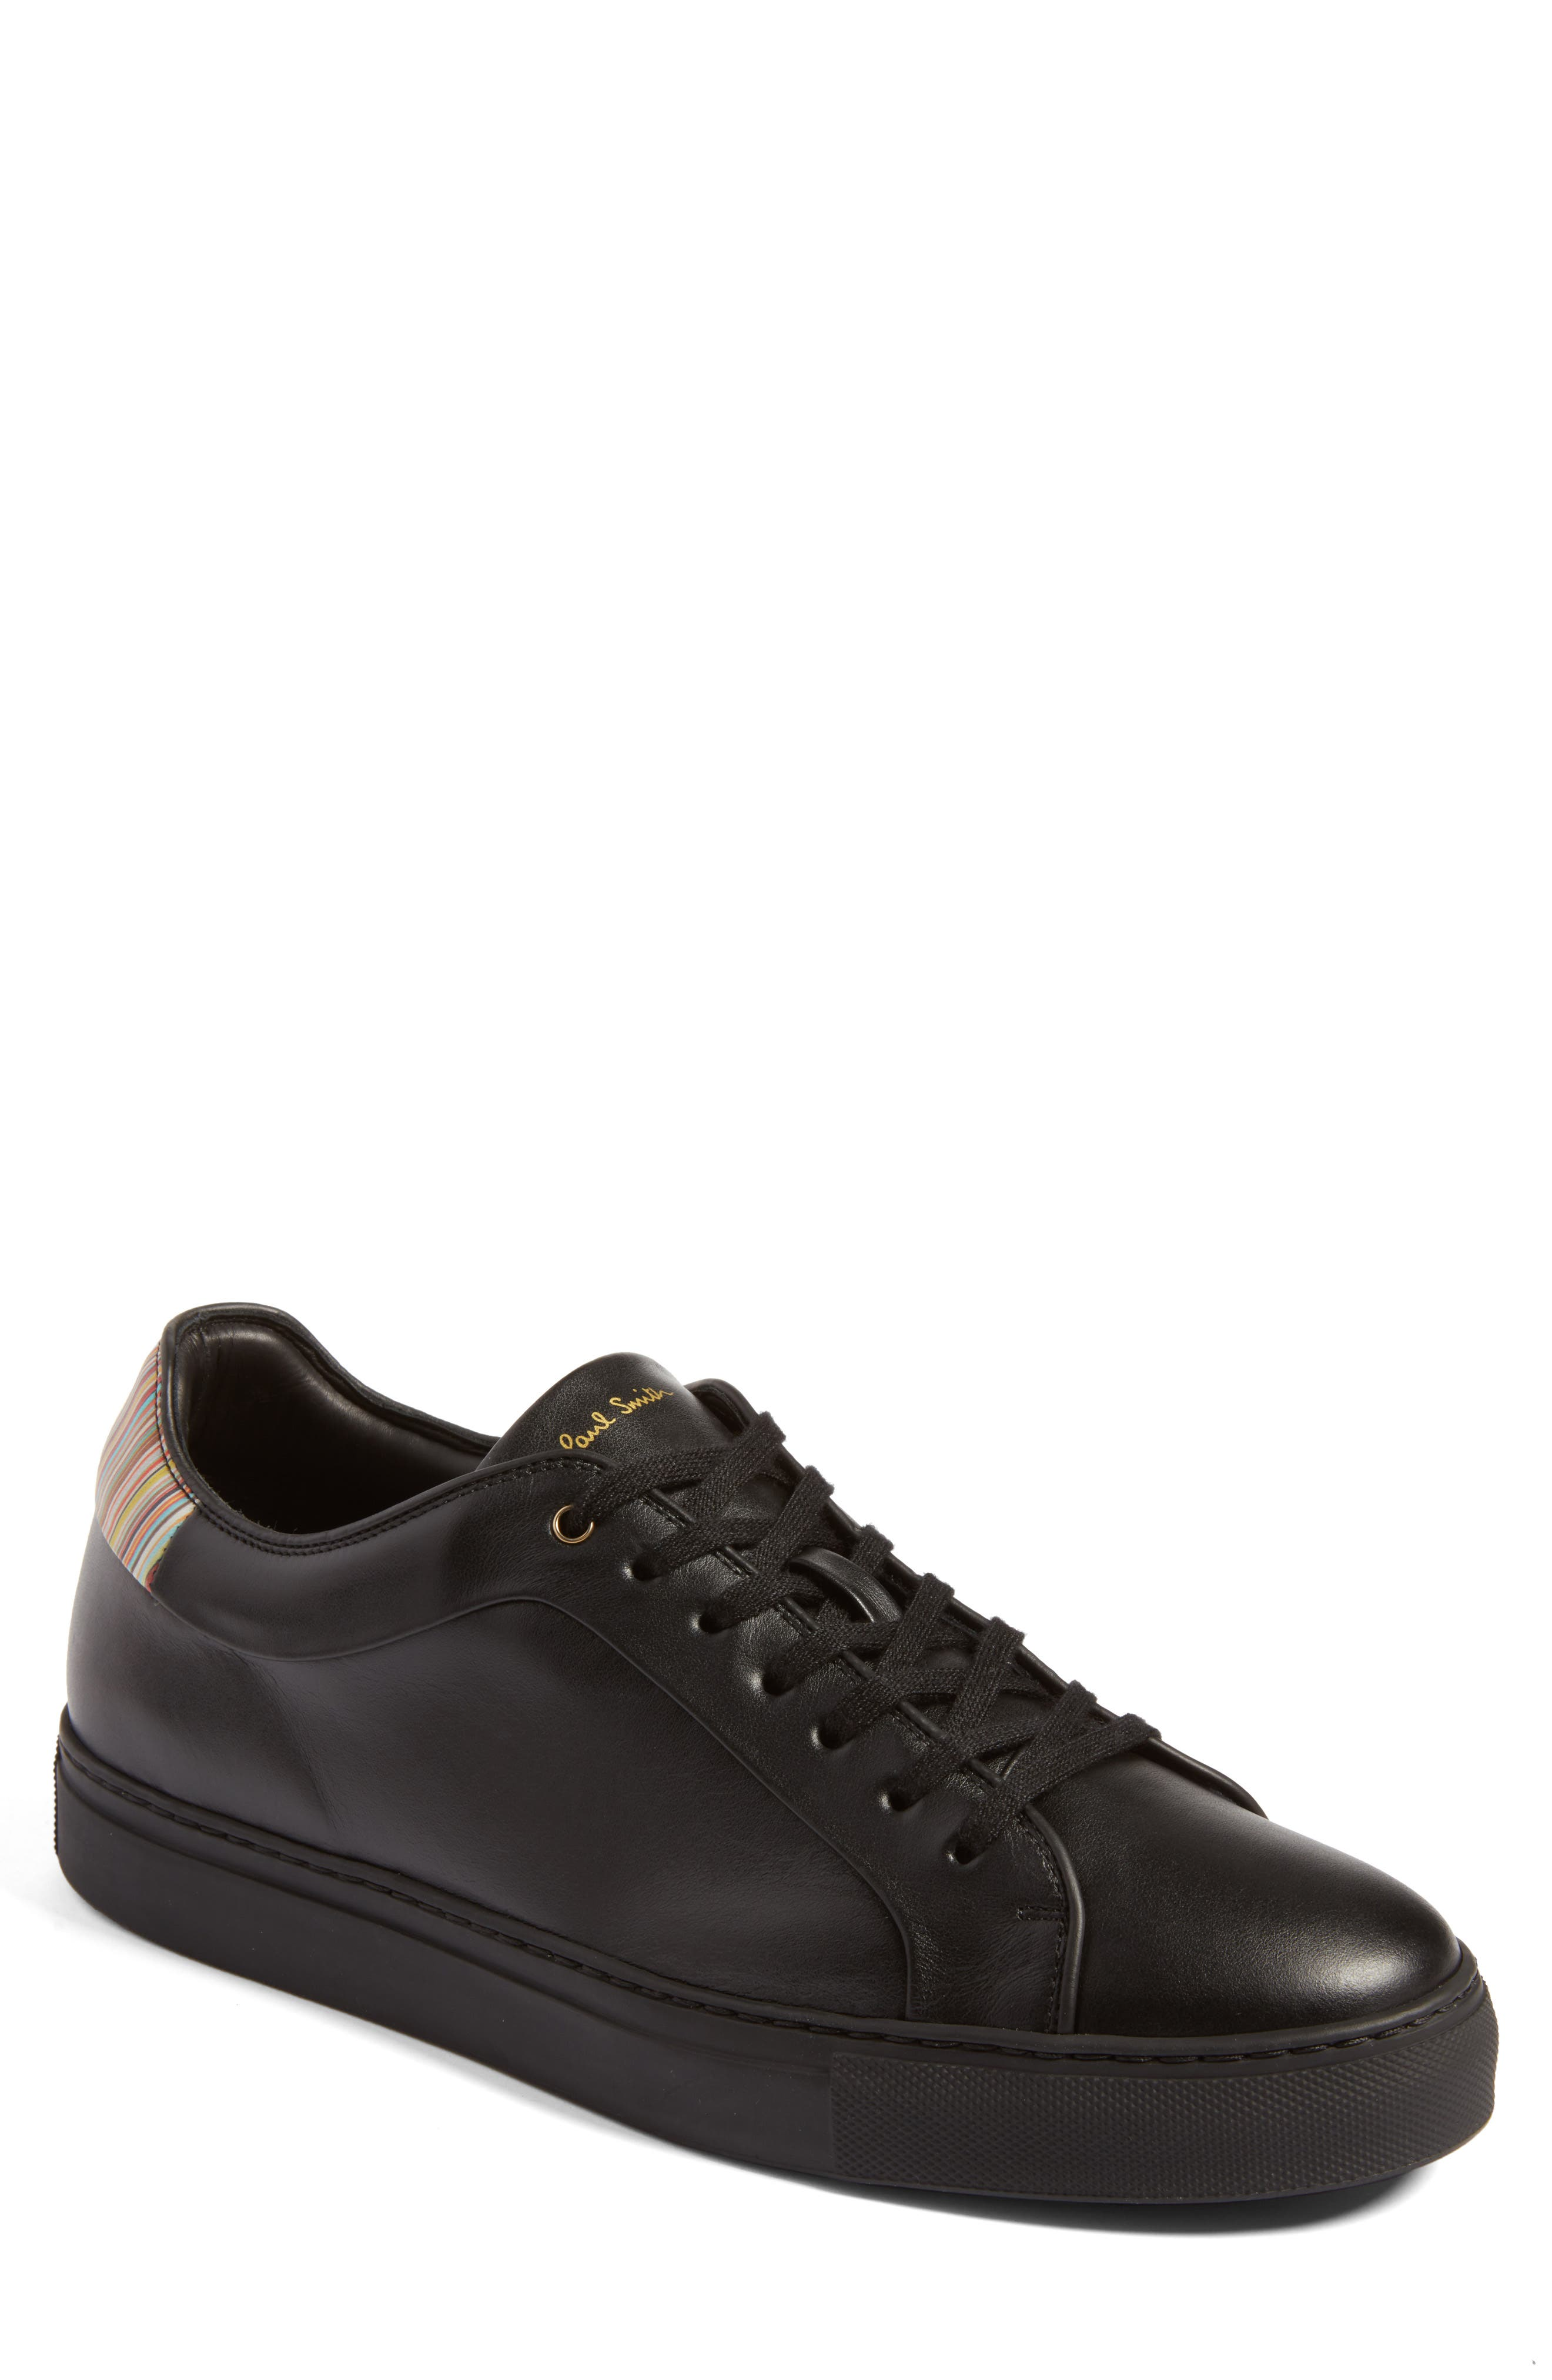 Alternate Image 1 Selected - Paul Smith Basso Sneaker (Men)